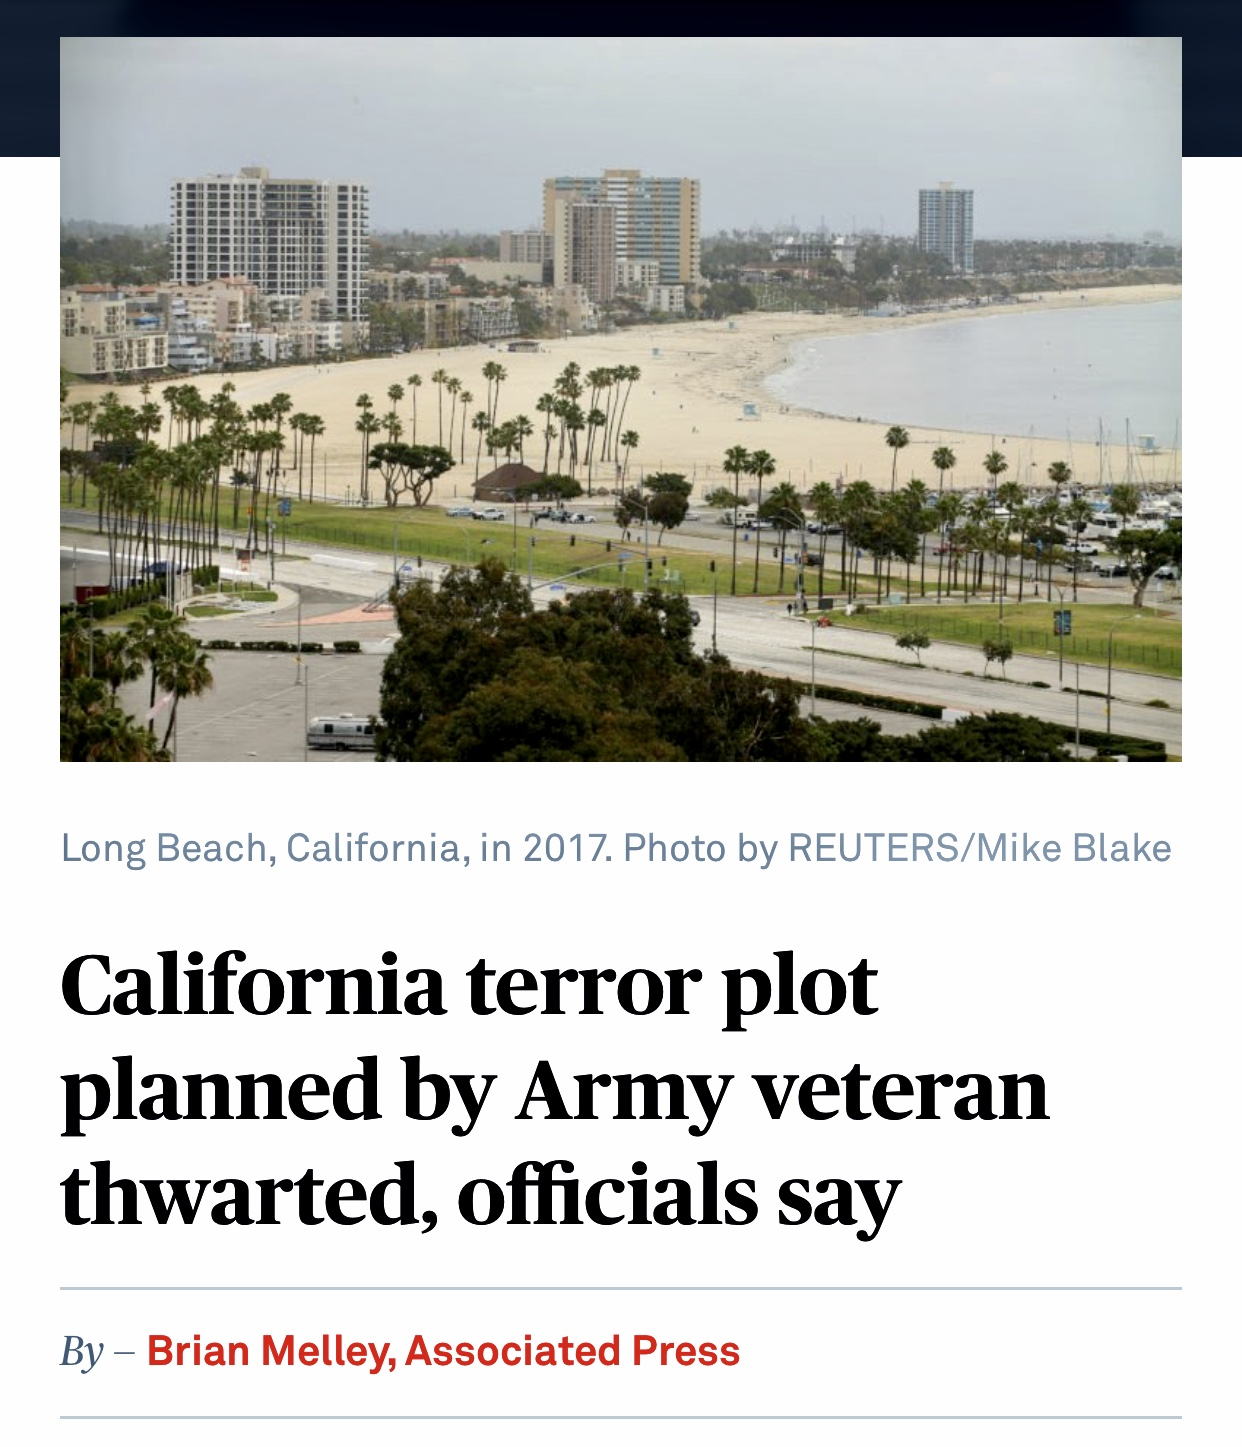 California terror plot planned by Army veteran thwarted, officials say | PBS NewsHour 575 Views